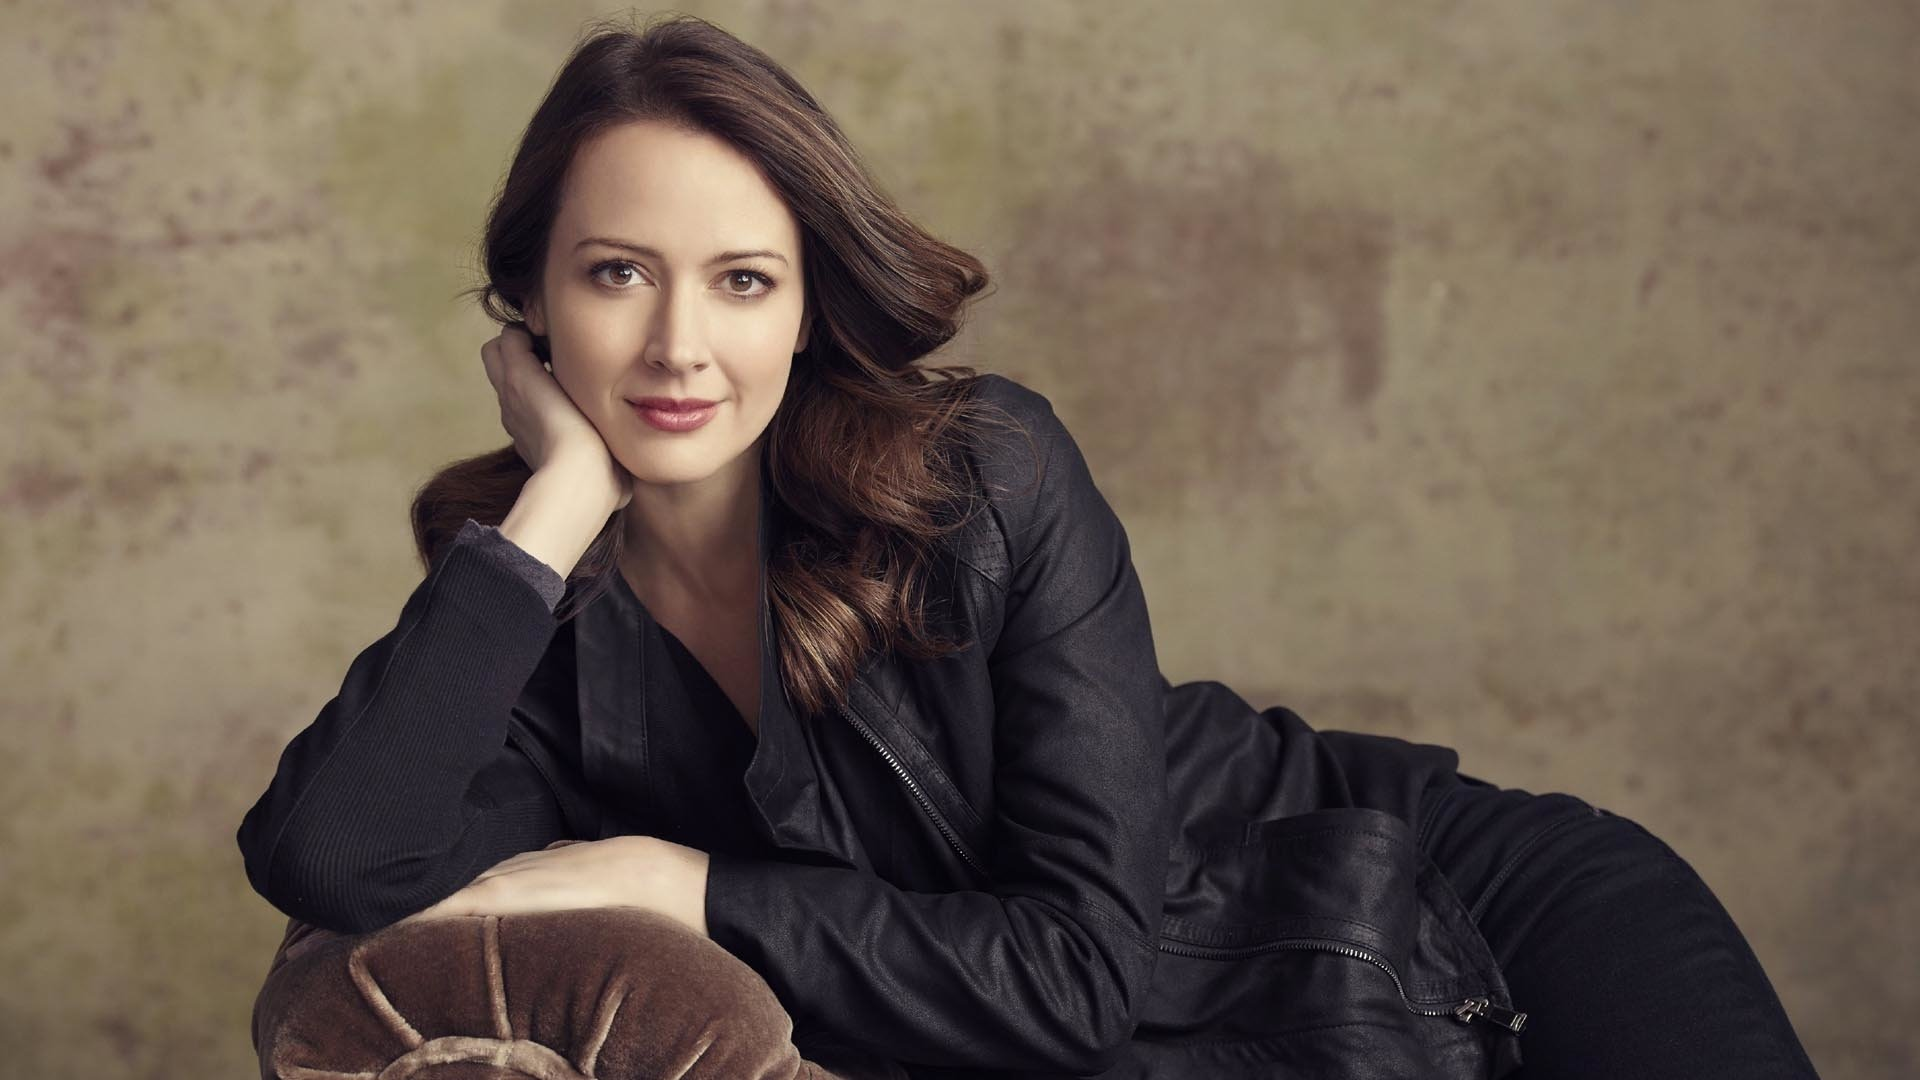 1920x1080 - Amy Acker Wallpapers 1